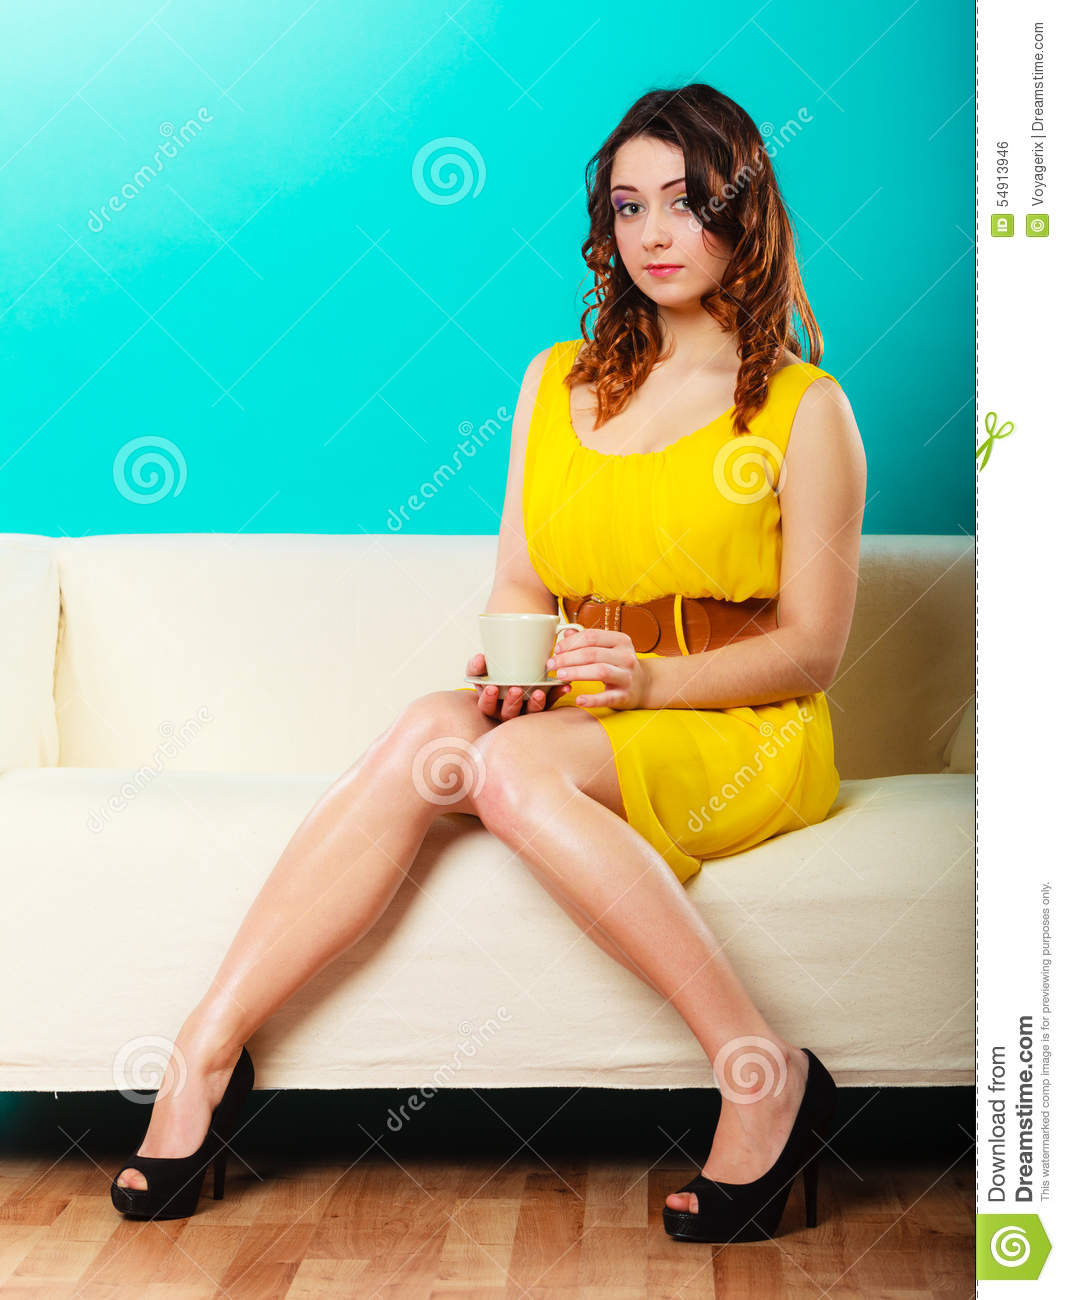 Hot girl sitting